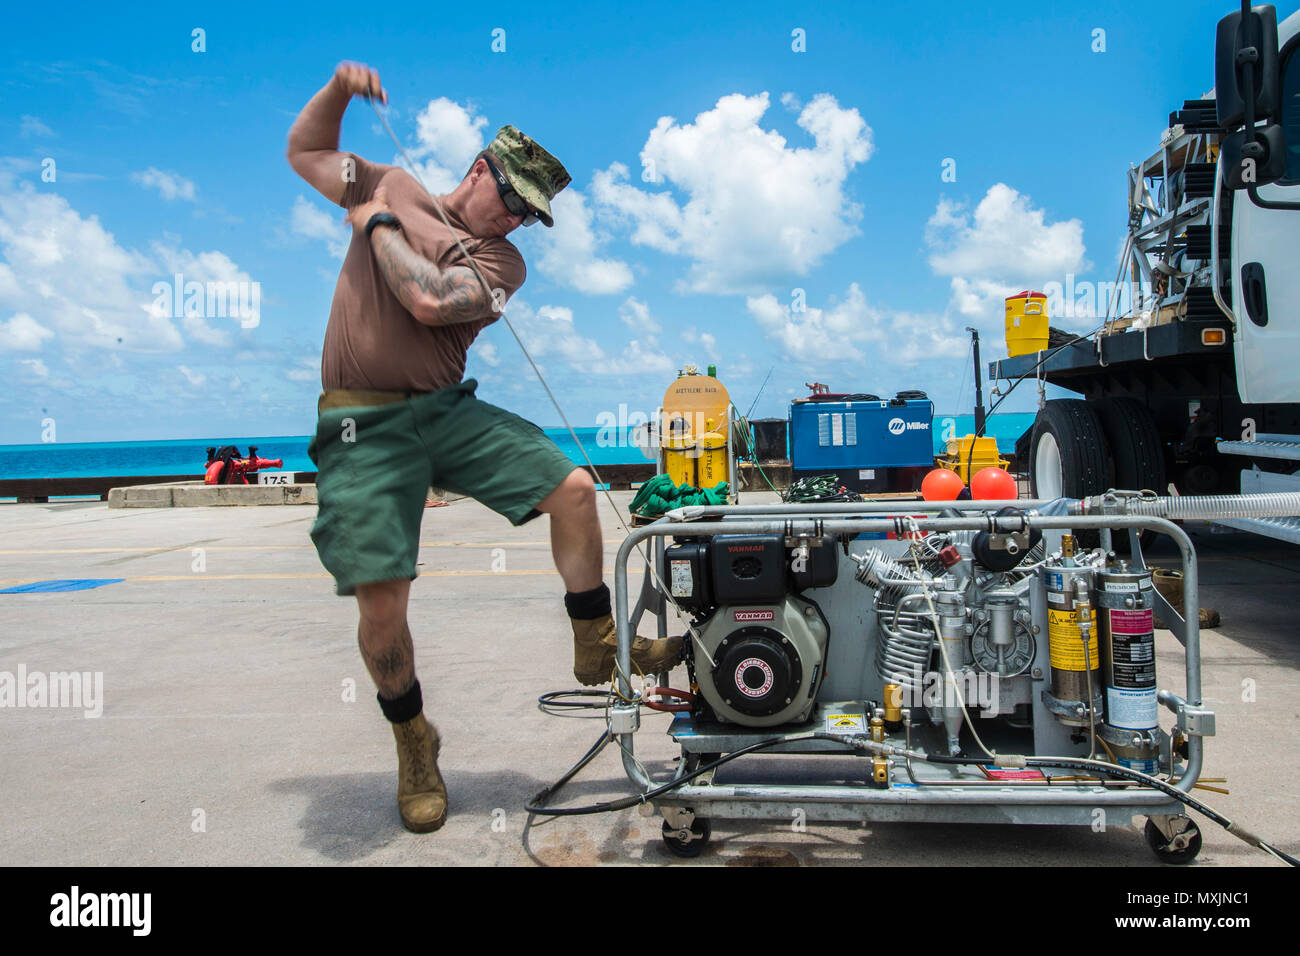 Chief Petty Officer Scott Schleisman, assigned to Underwater Construction Team (UCT) 2's Construction Dive Detachment Bravo (CDDB), starts an air compressor in Diego Garcia, British Indian Ocean Territory, Nov. 7, 2016. CDDB is performing precision underwater demolition and light salvage to remove obstructions from Diego Garcia's deep draft wharf. CDDB is on the third stop of their deployment, where they are conducting inspection, maintenance, and repair of various underwater and waterfront facilities while under Commander, Task Force (CTF) 75, the primary expeditionary task force responsible  Stock Photo